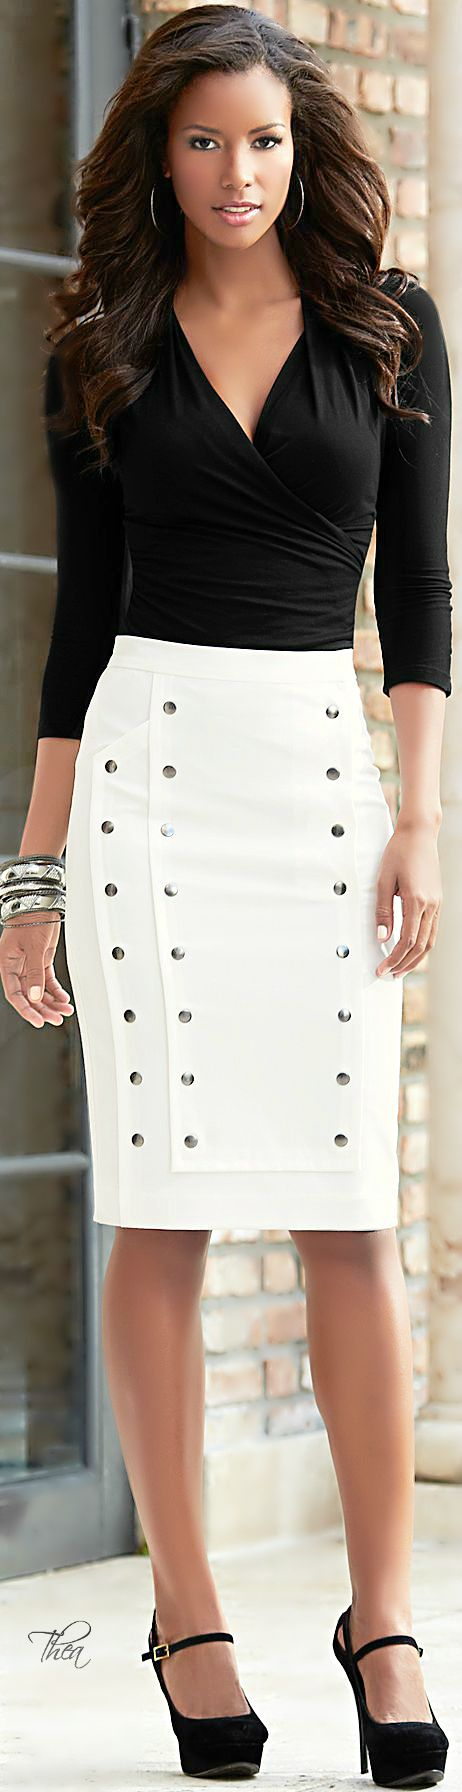 Love the top and cute skirt if I had an occasion for it...